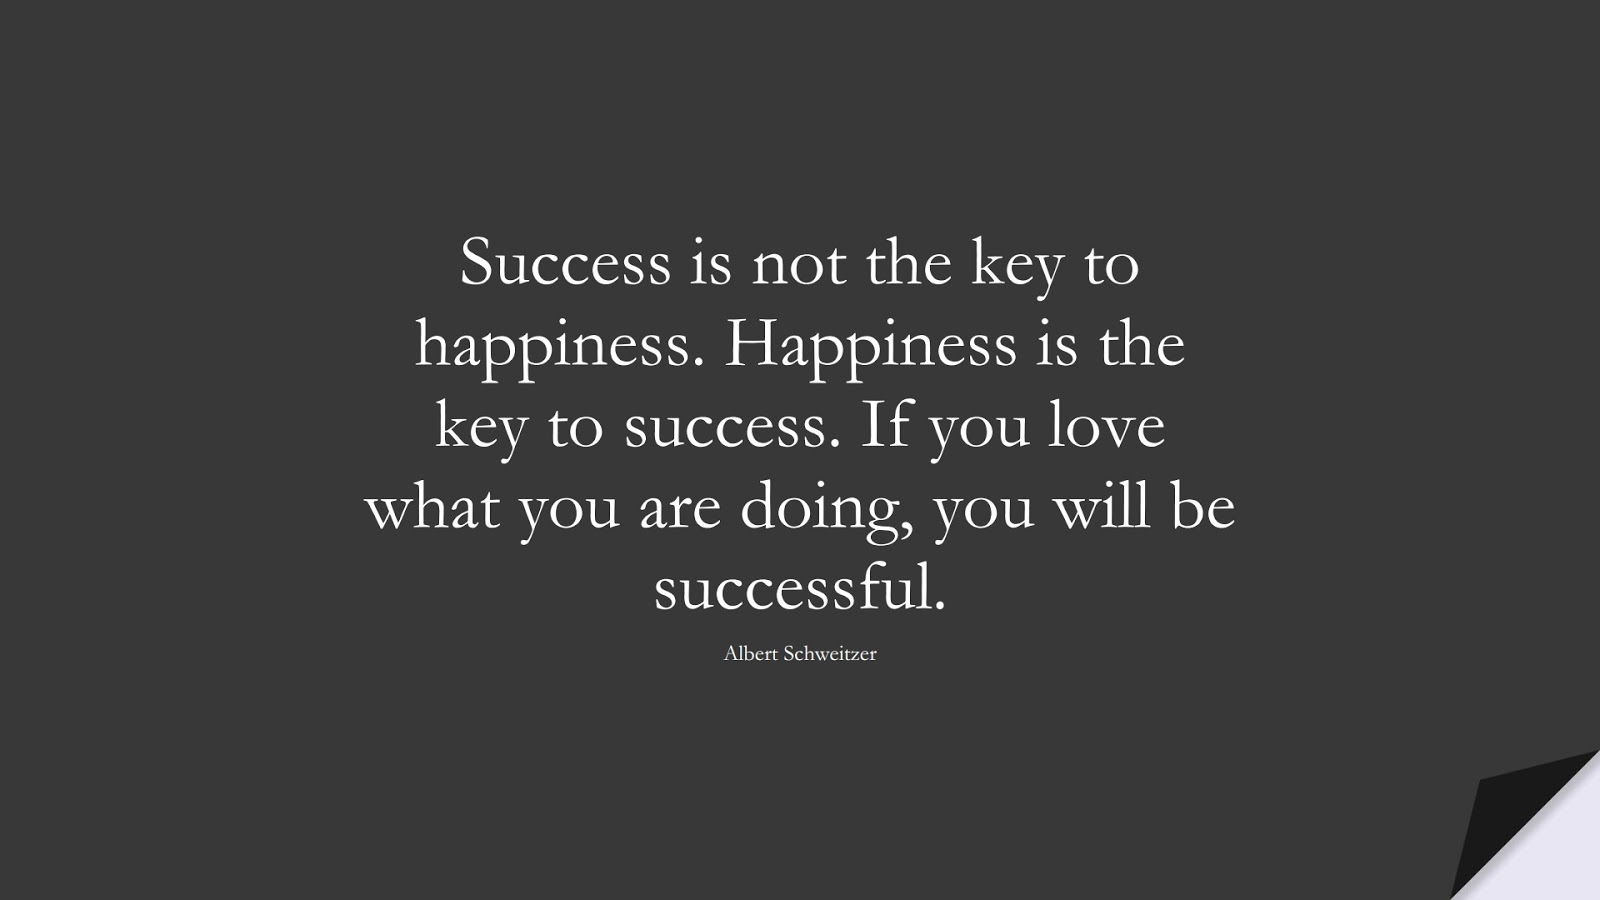 Success is not the key to happiness. Happiness is the key to success. If you love what you are doing, you will be successful. (Albert Schweitzer);  #HappinessQuotes